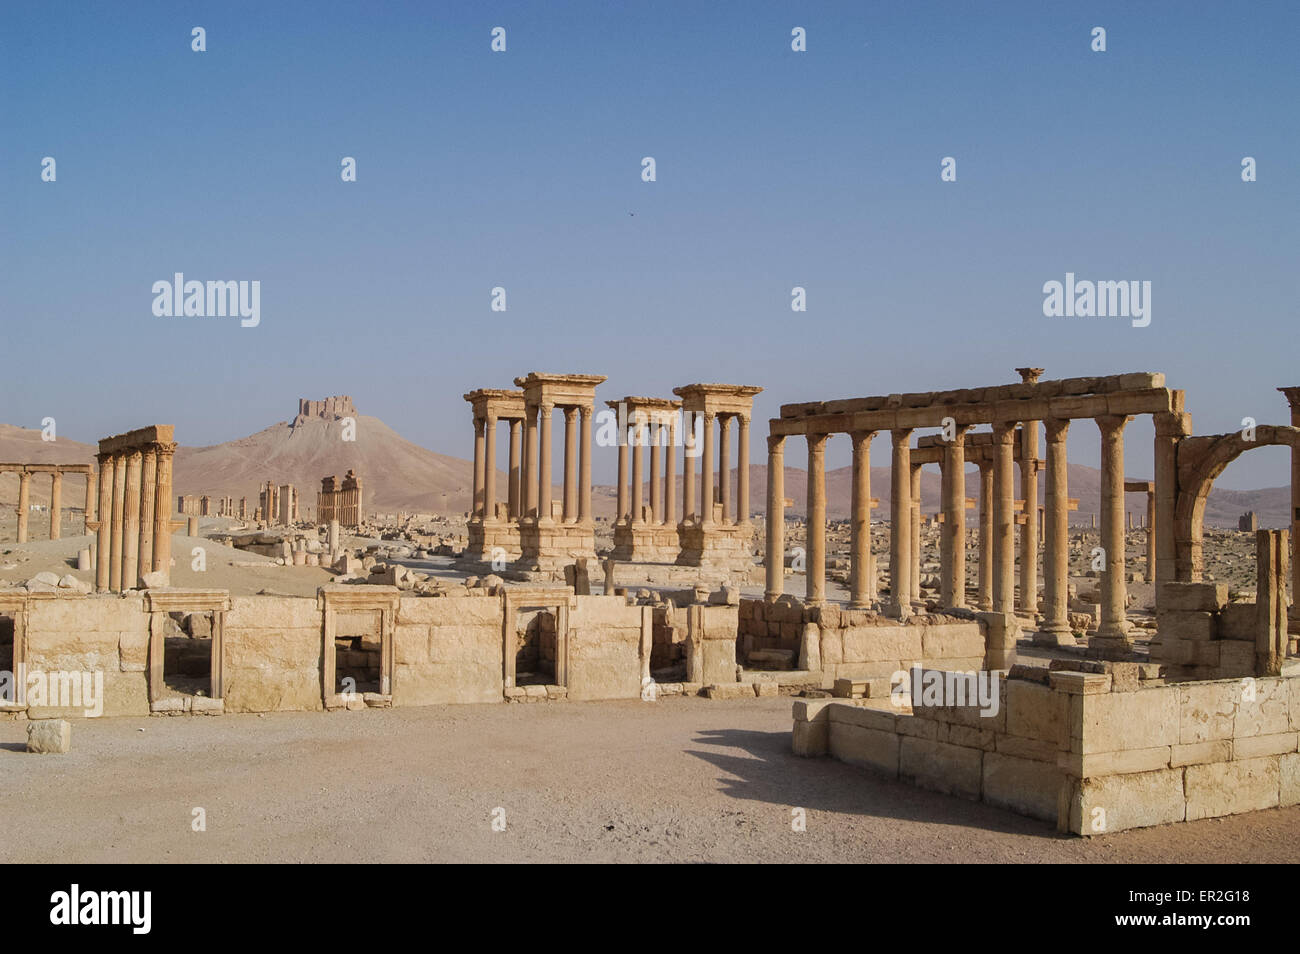 Ancient Ruin City Of Palmyra In Syria A Unesco World Heritage Site